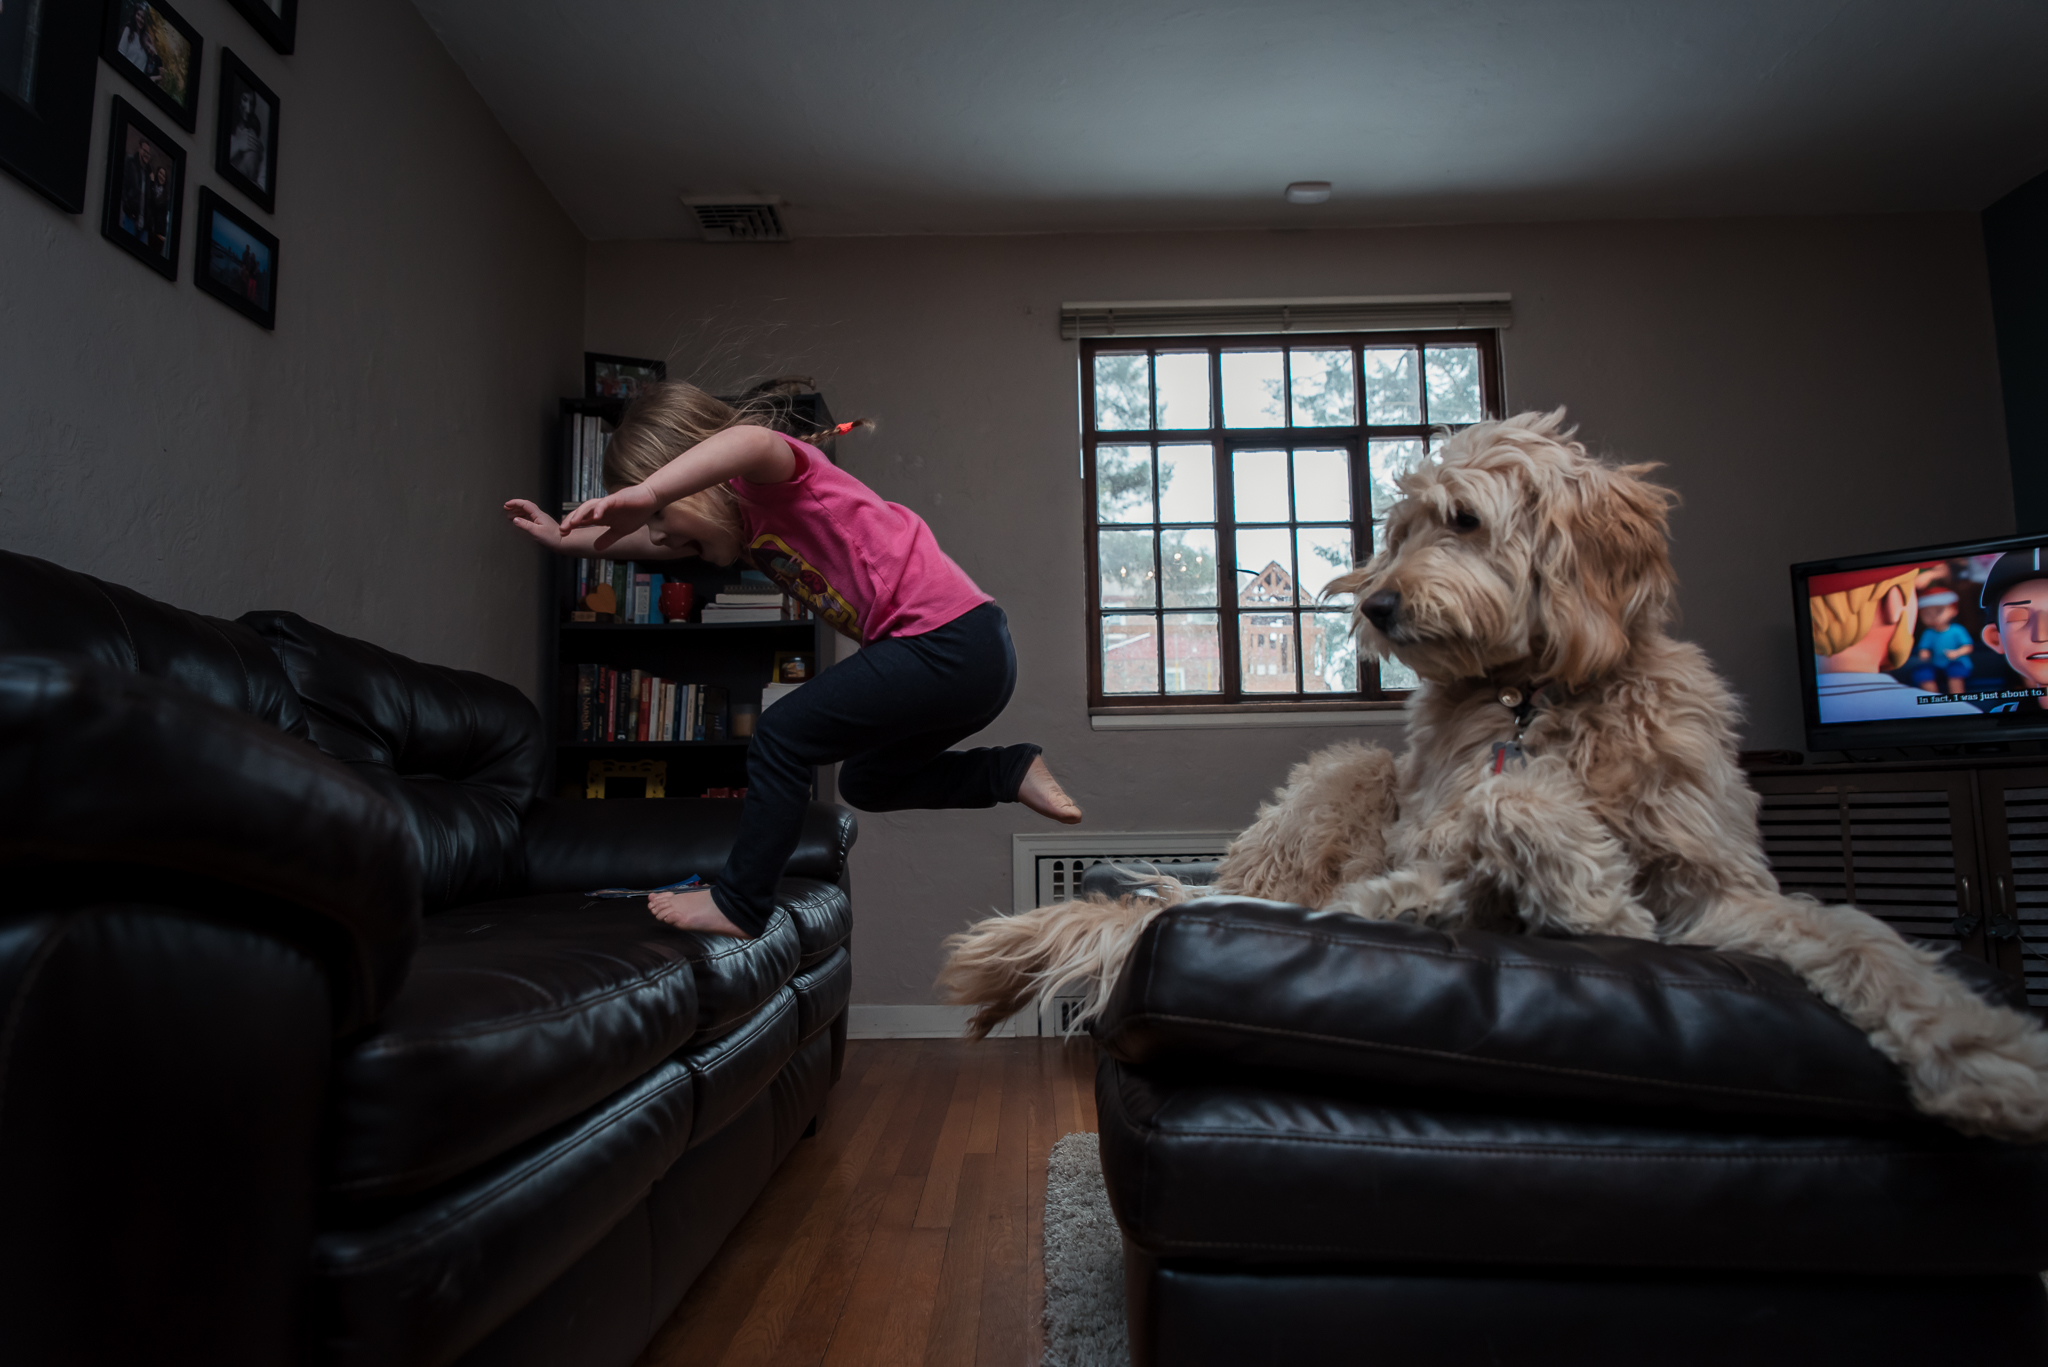 Leaping off the couch